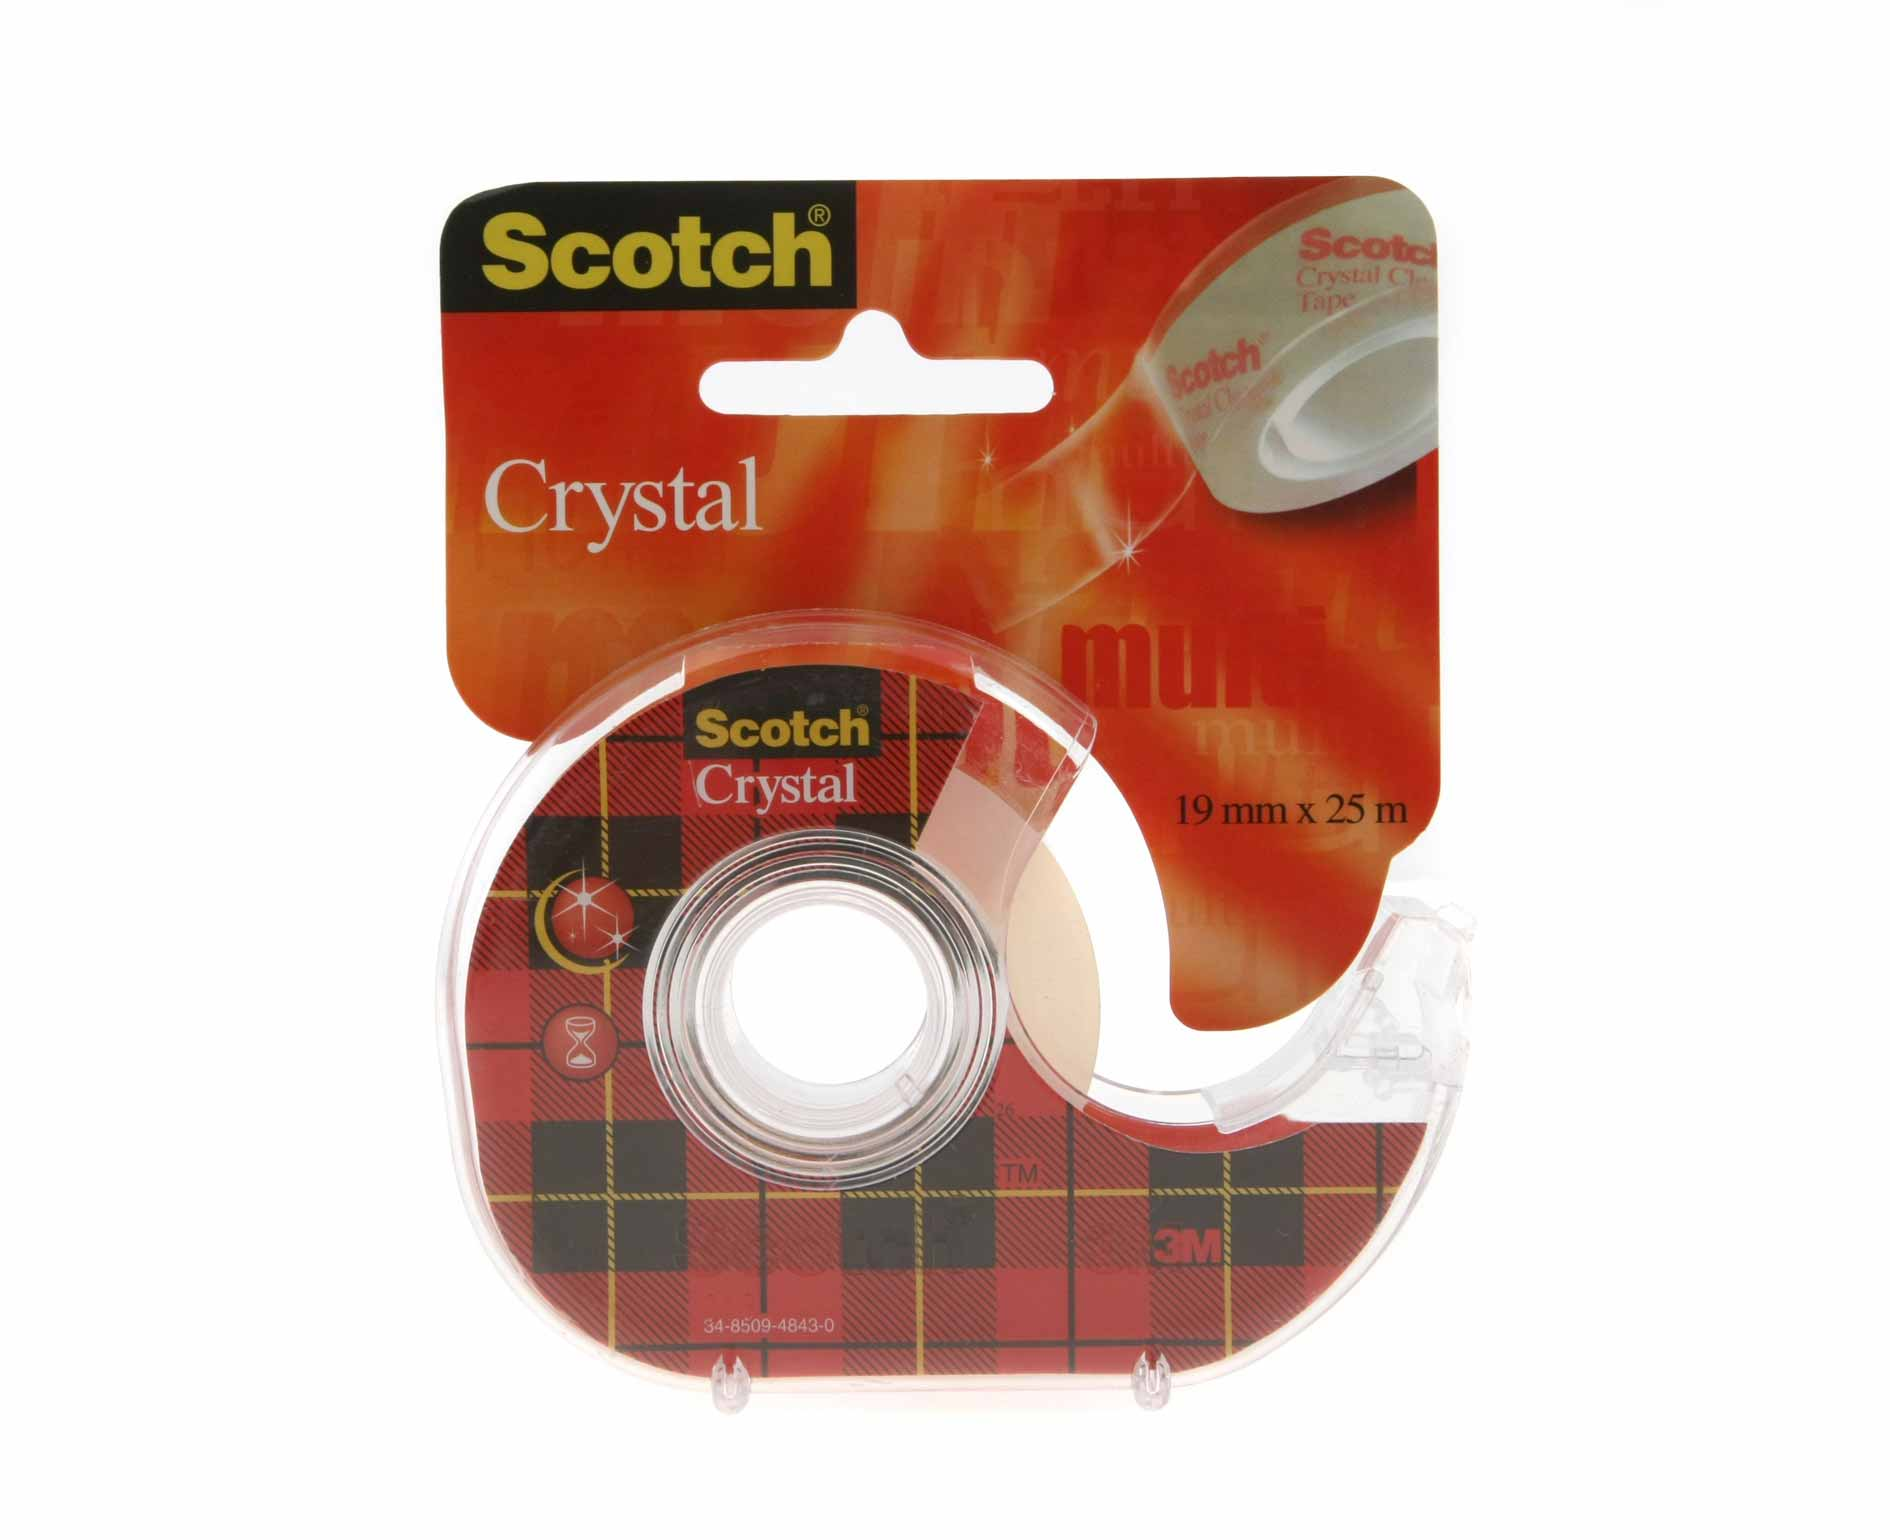 Image of 3M Scotch Crystal Clear Tape 19mm x 25m with Dispenser, Clear